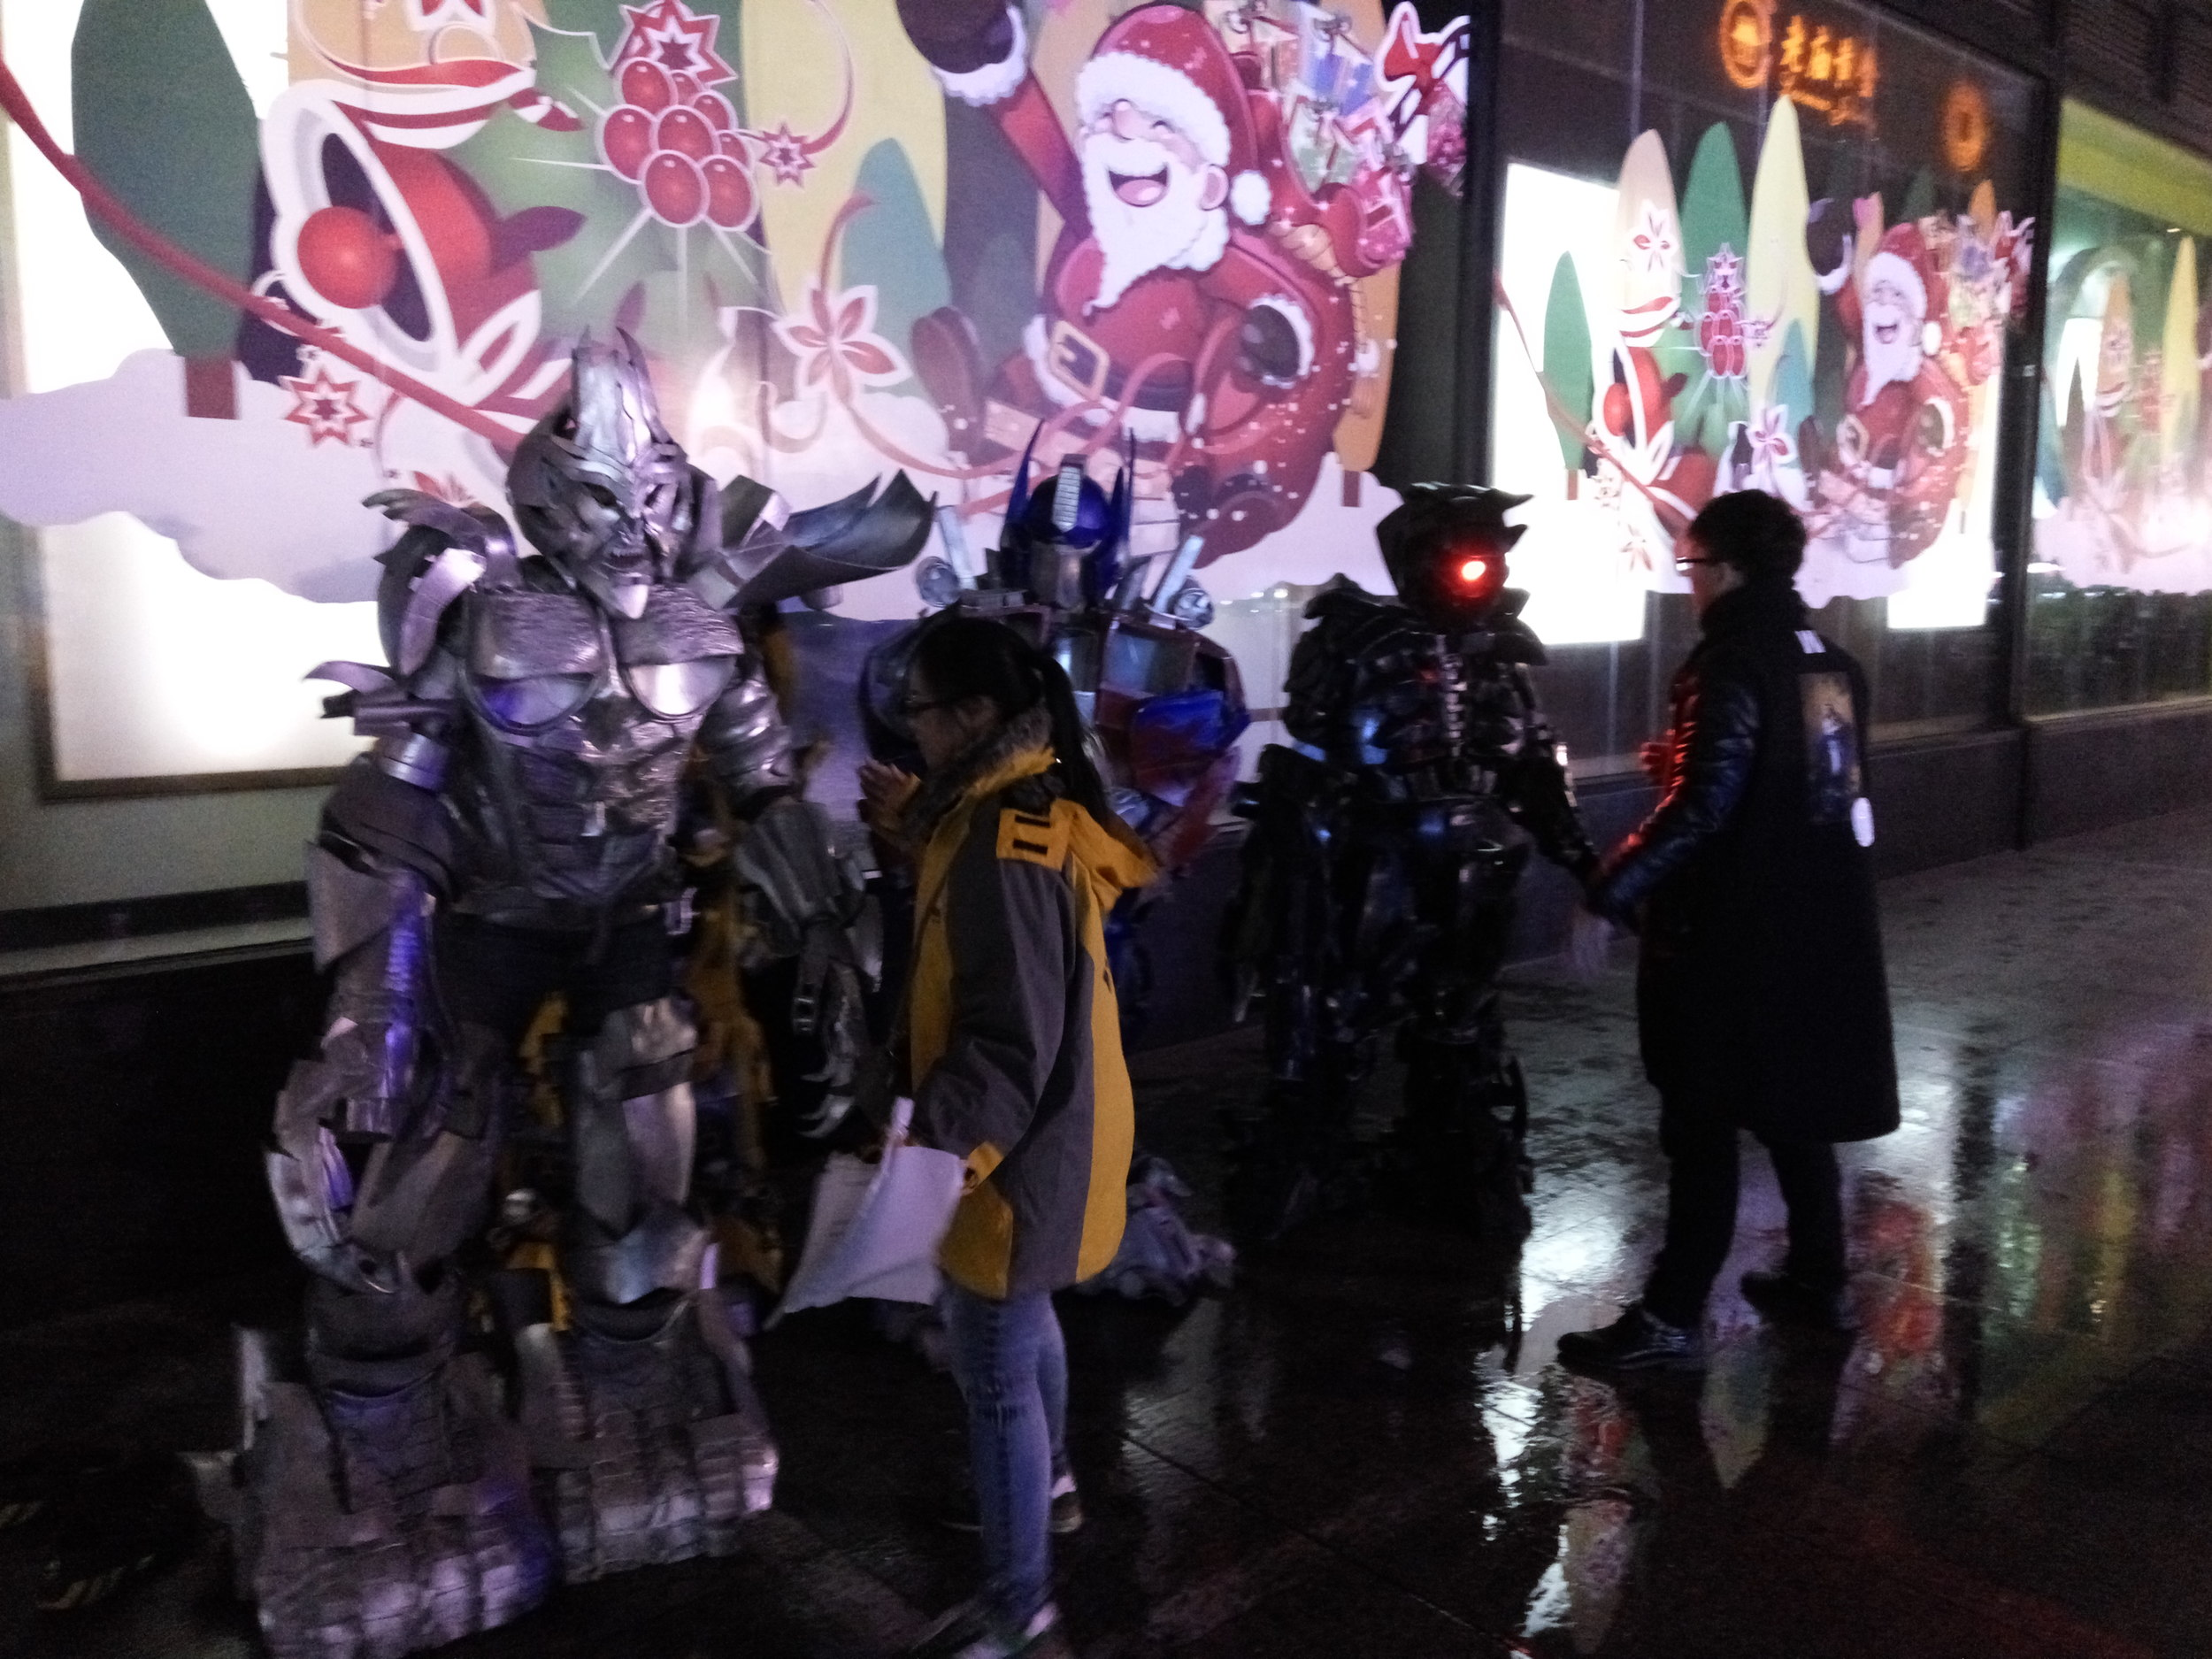 The Transformers get instructions from their directors before going out to greet the public.